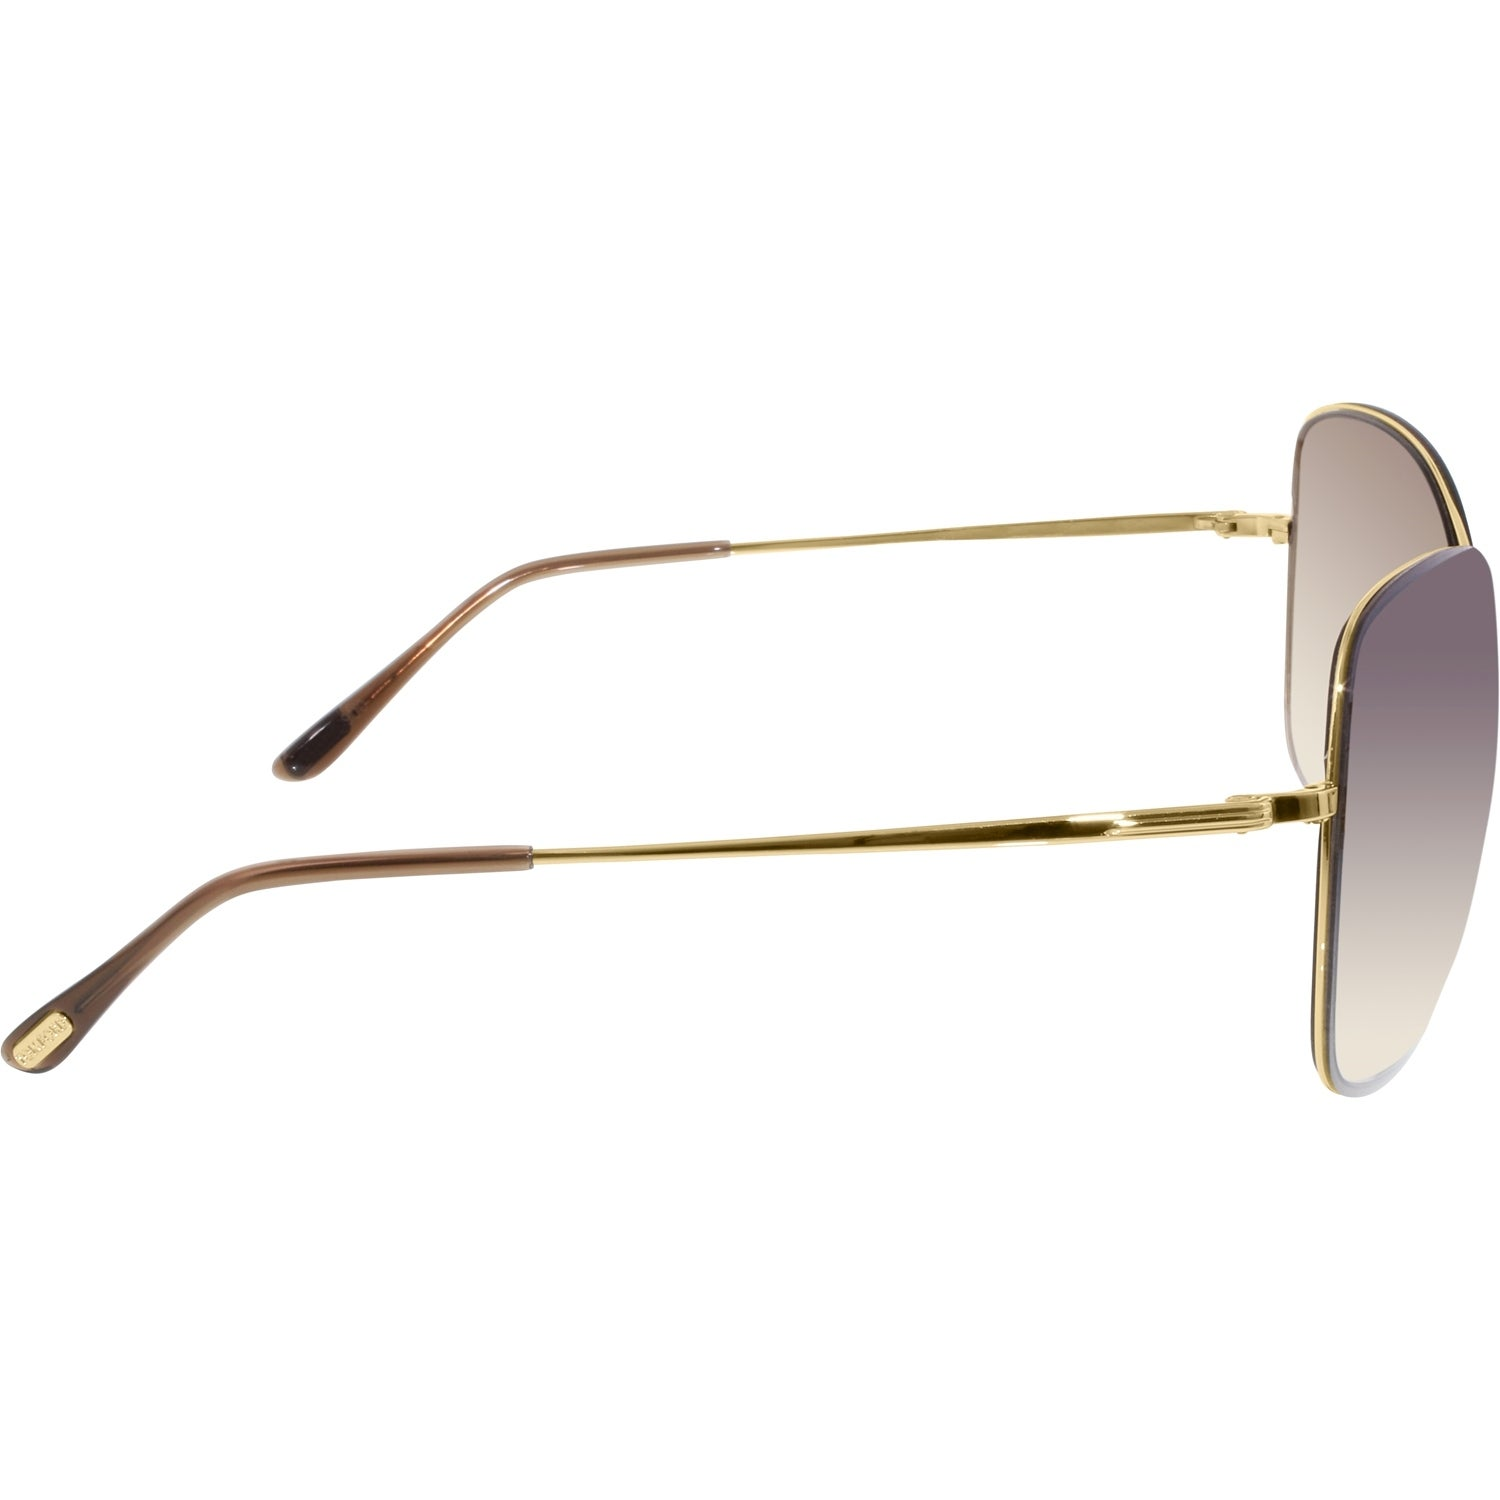 580b5a4878 Shop Tom Ford Women s Gradient Colette FT0250-28F-63 Gold Butterfly  Sunglasses - Free Shipping Today - Overstock - 18901392